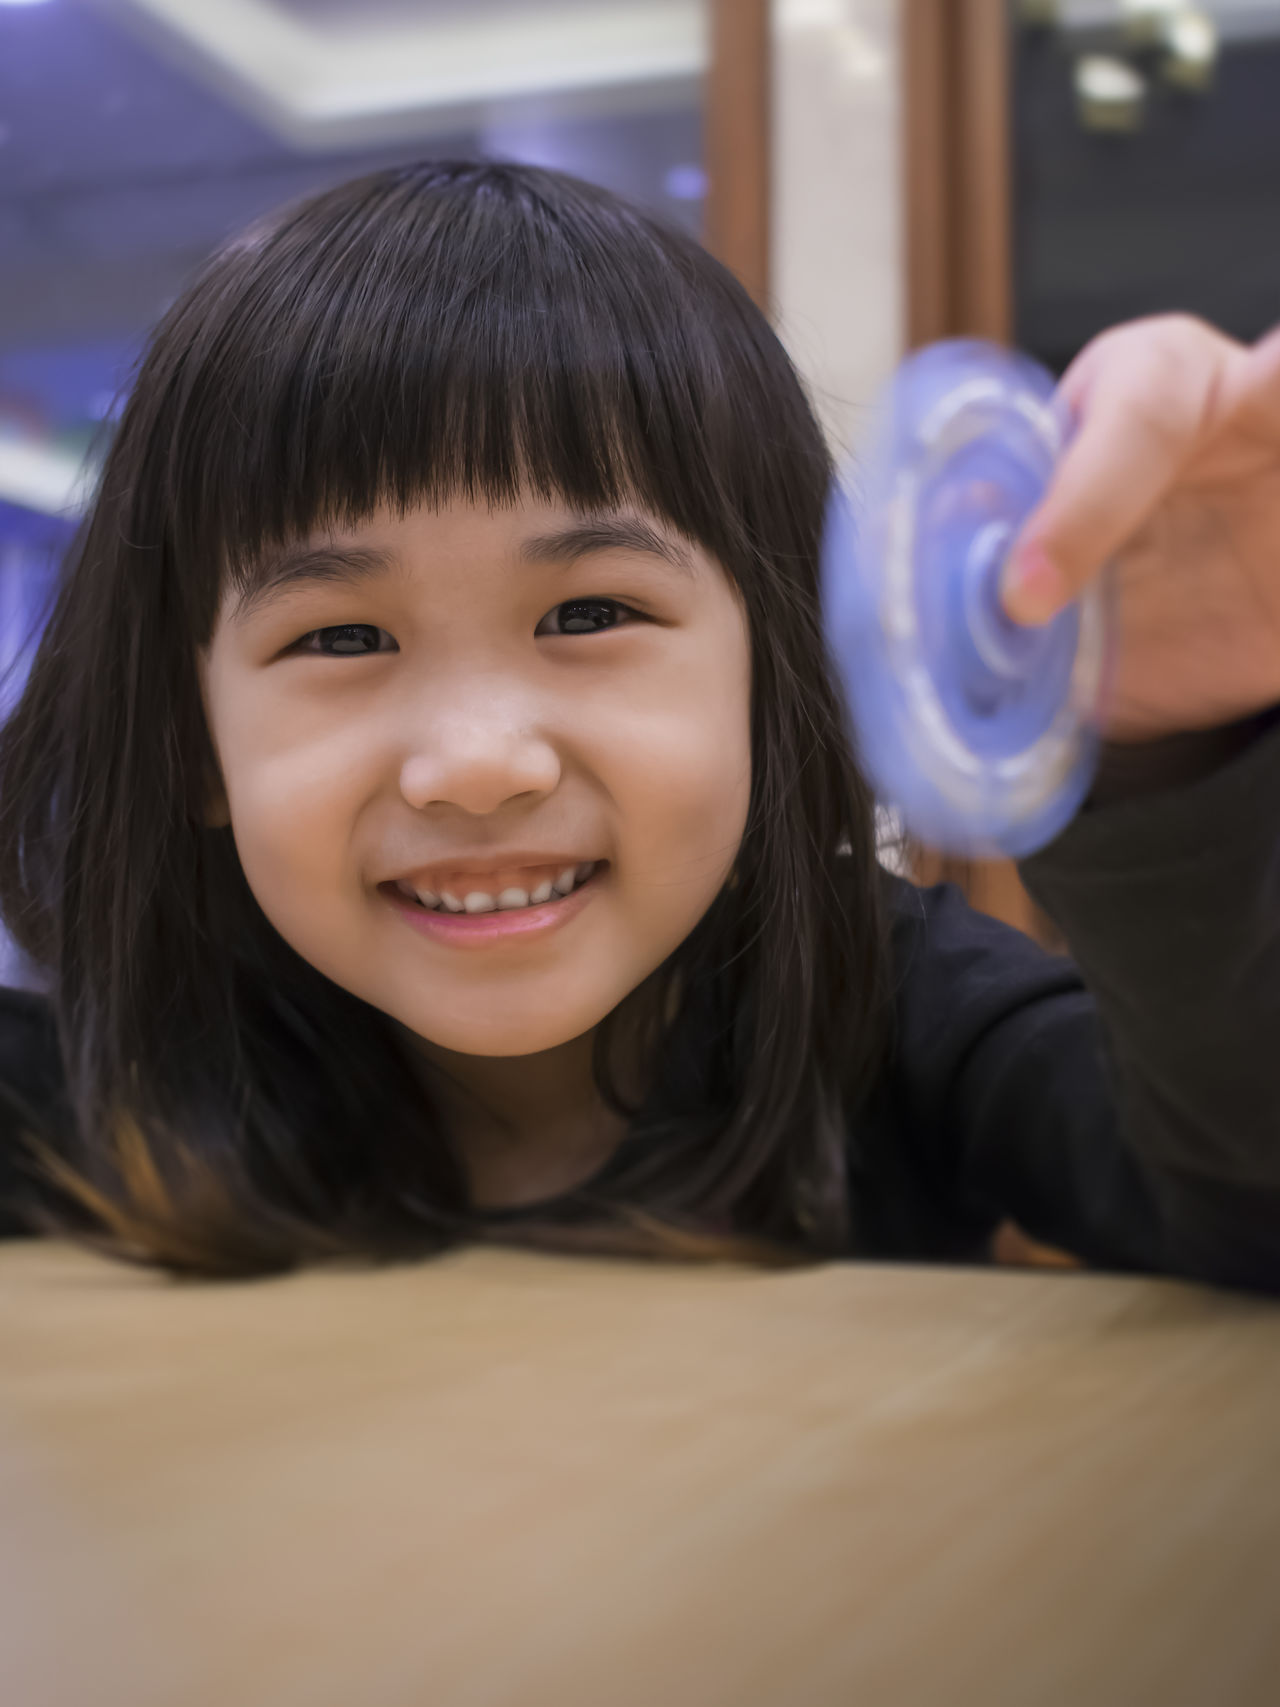 Child Proudly Displaying her New Toy Boys Cheerful Childhood Close-up Day Food And Drink Happiness Headshot Indoors  Lifestyles Looking At Camera One Person Portrait Real People Smilin Smiling Smiling Child SP Toyosu